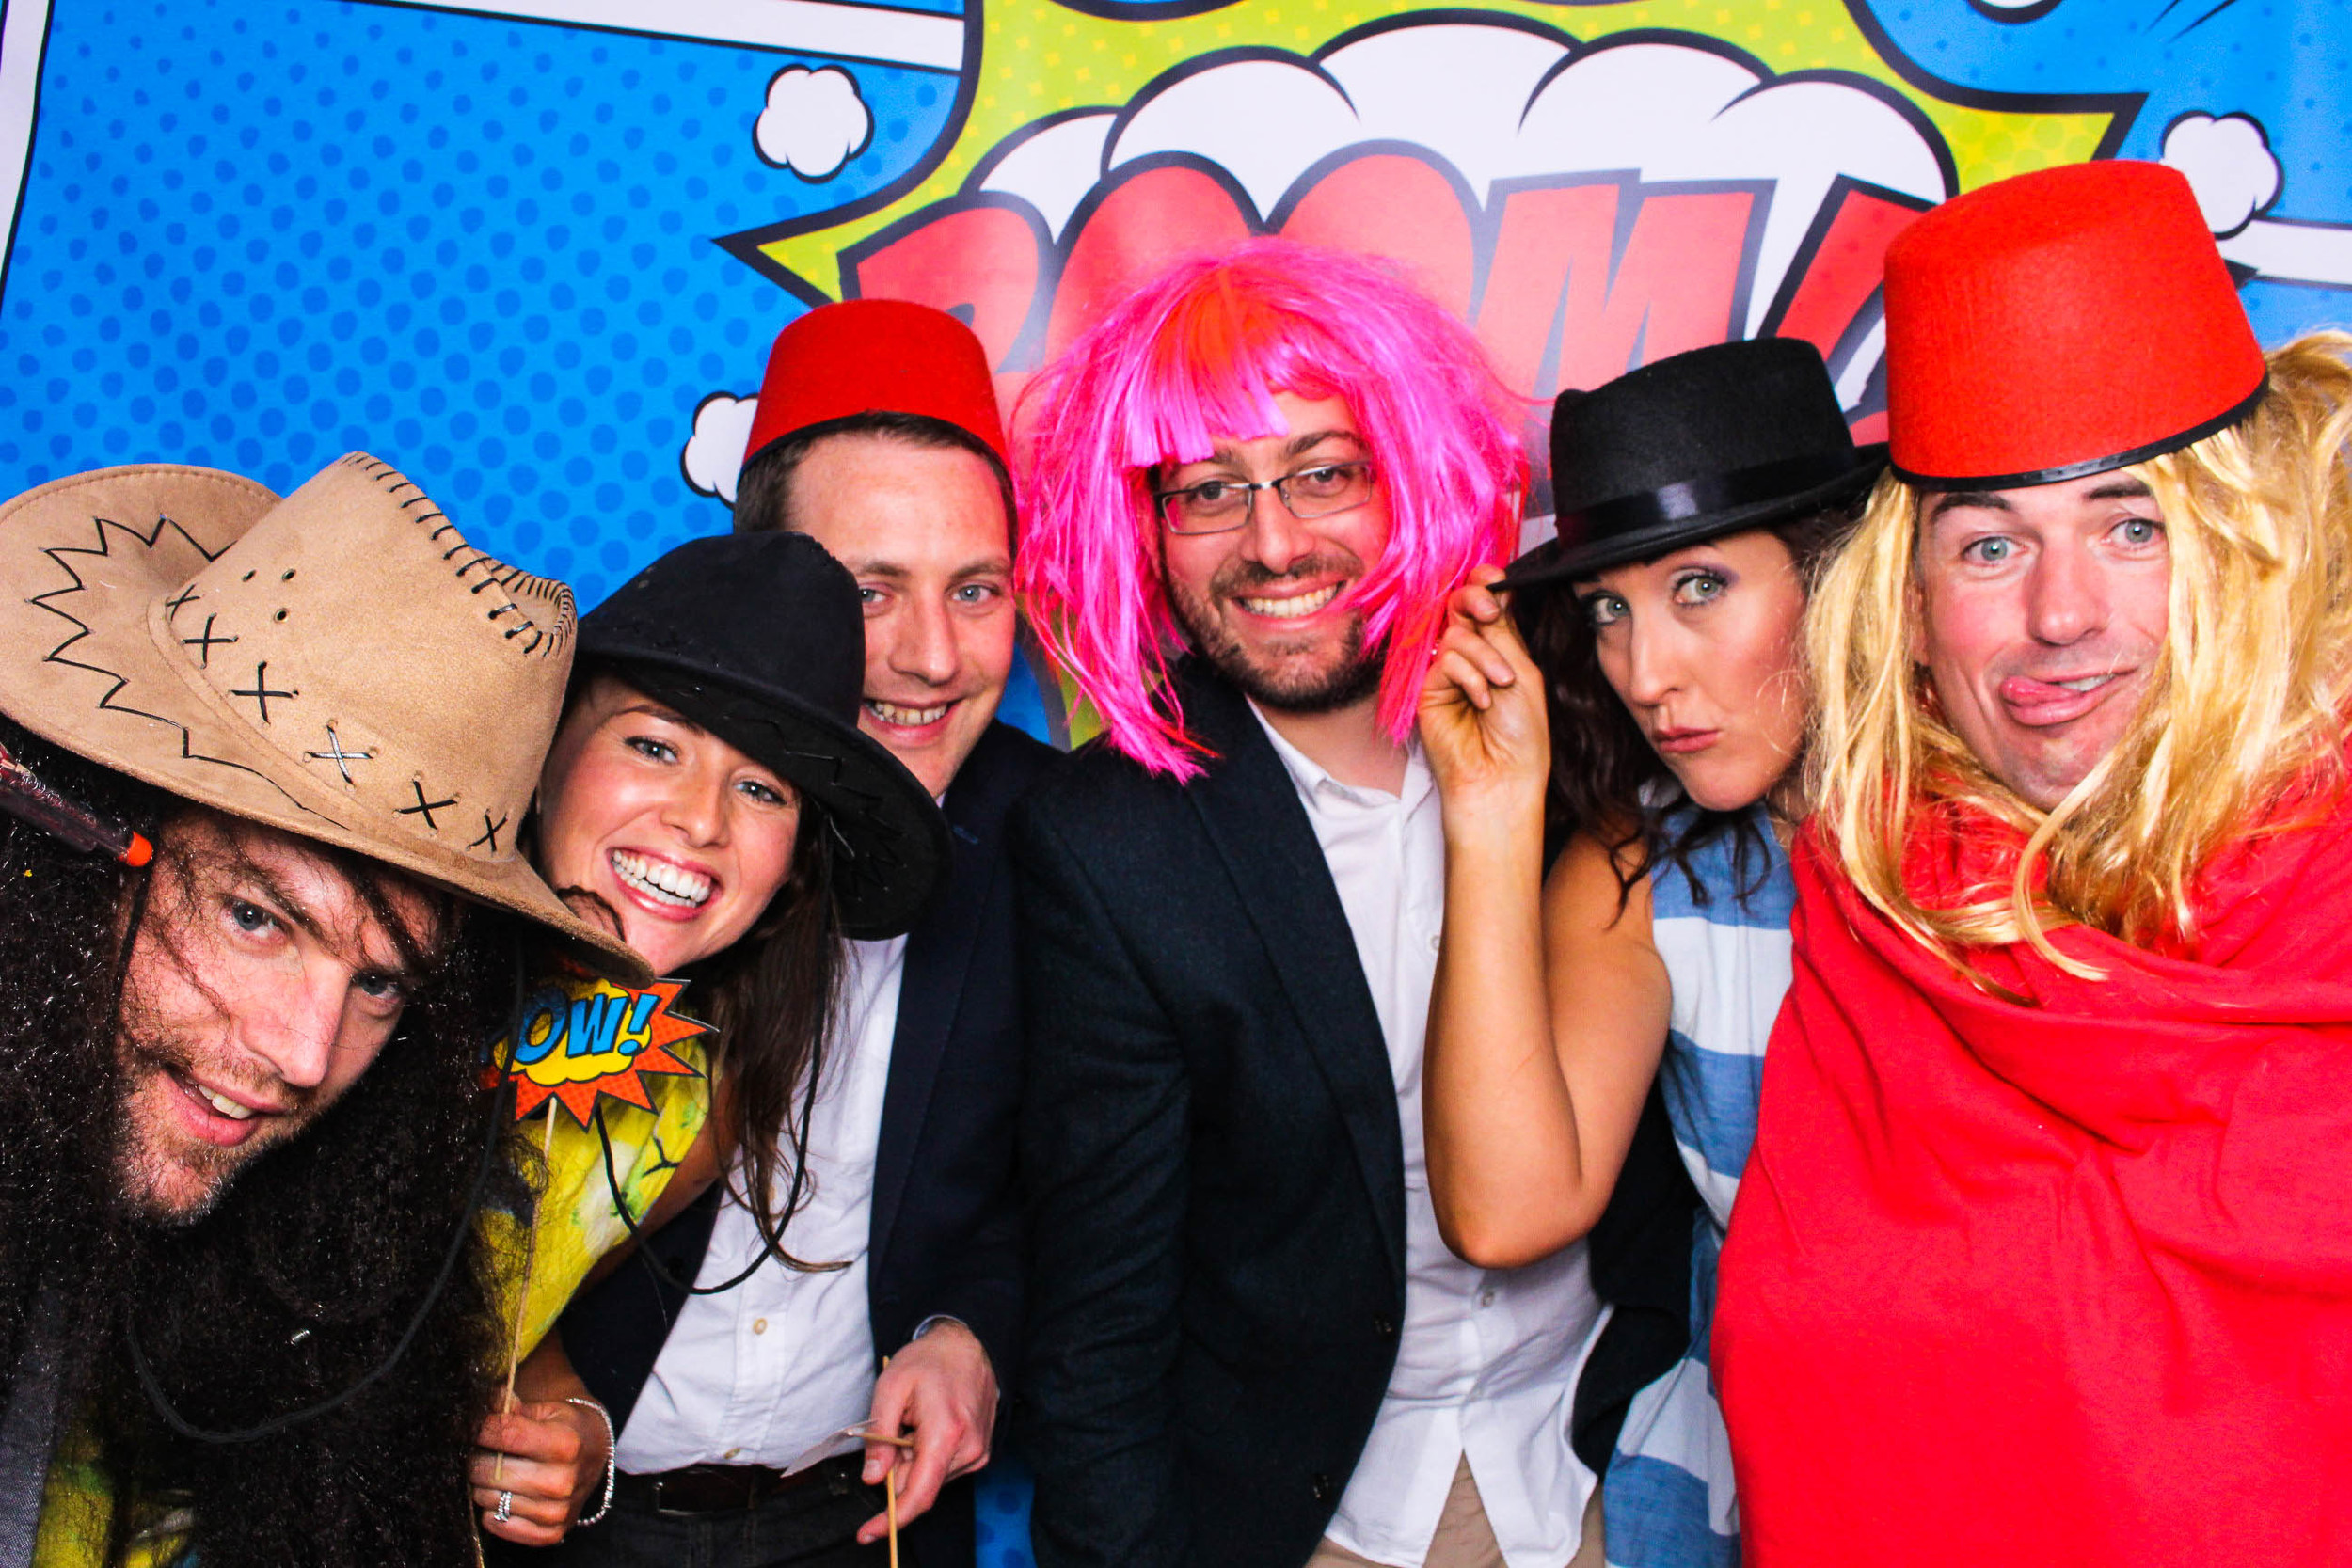 Fotoauto Photo Booth Hire - Shop Direct-252.jpg